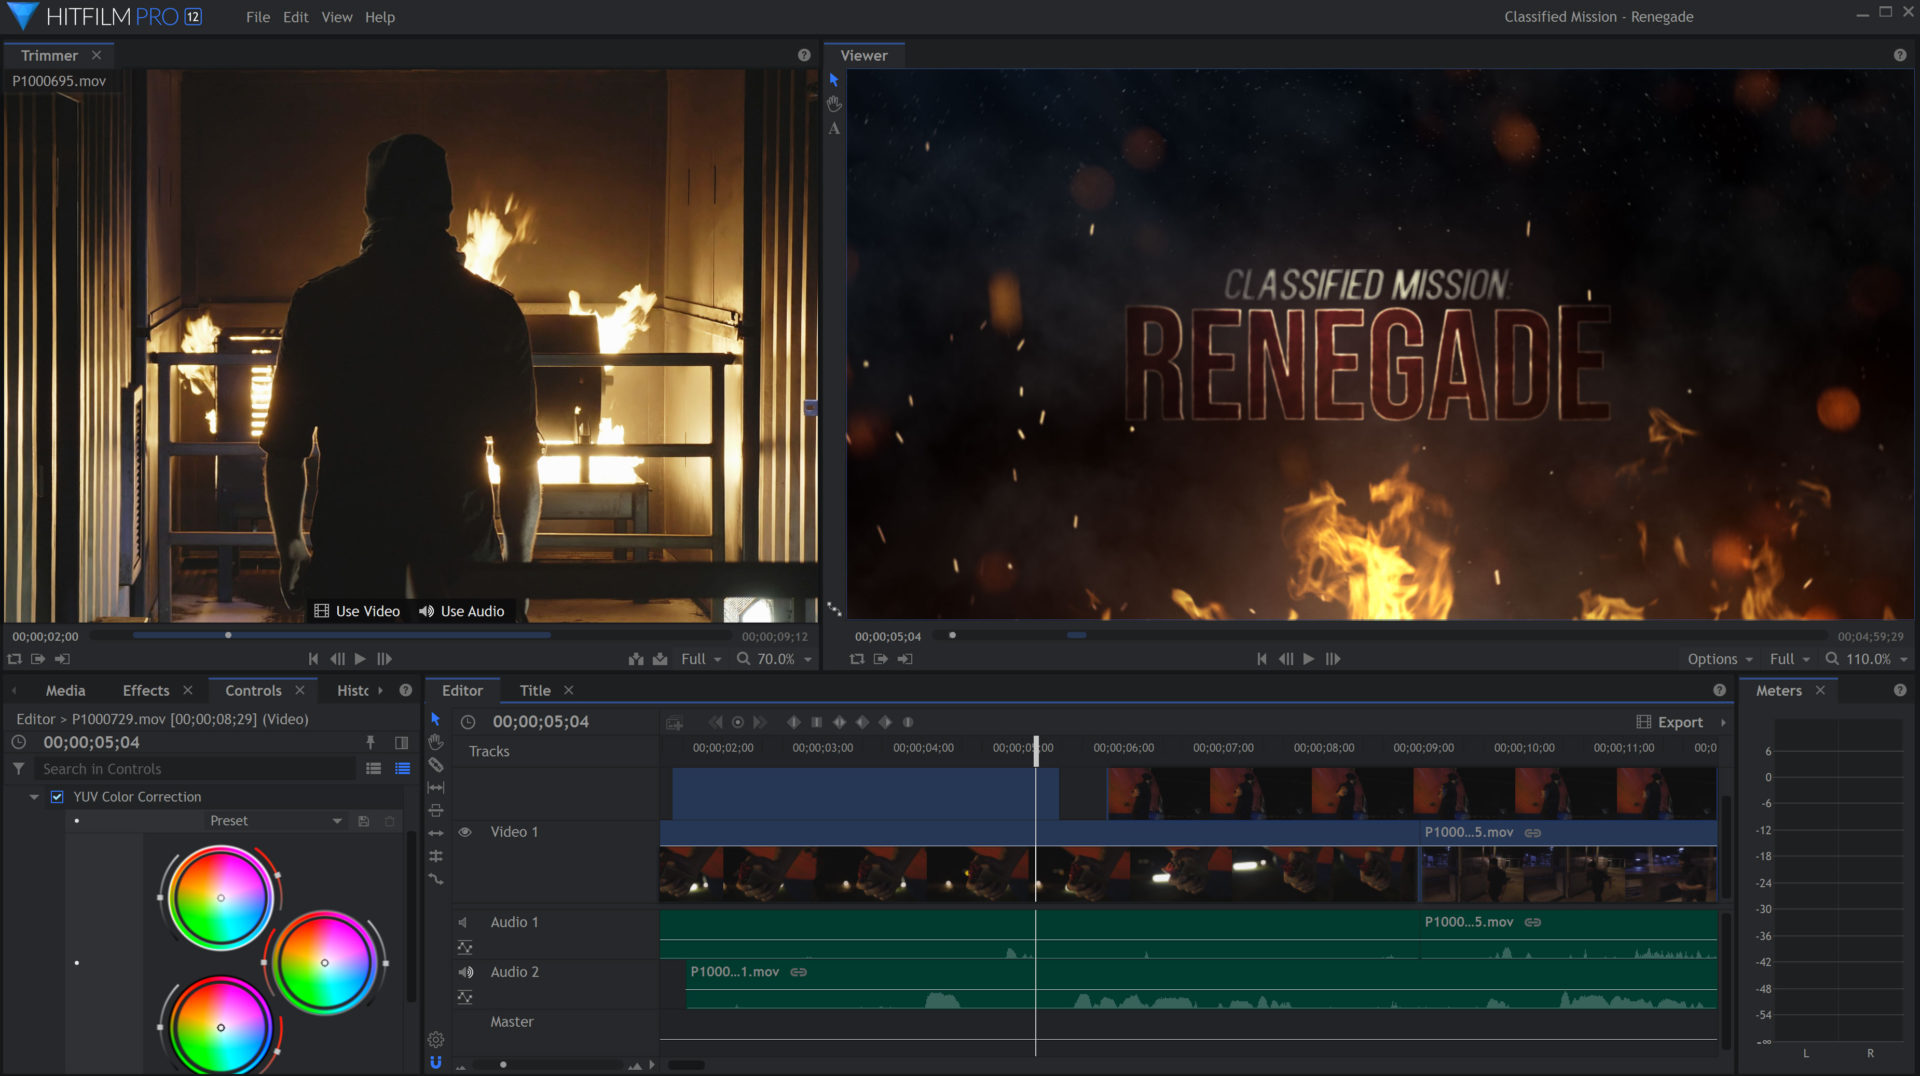 Hitfilm interface with our short film Renegade